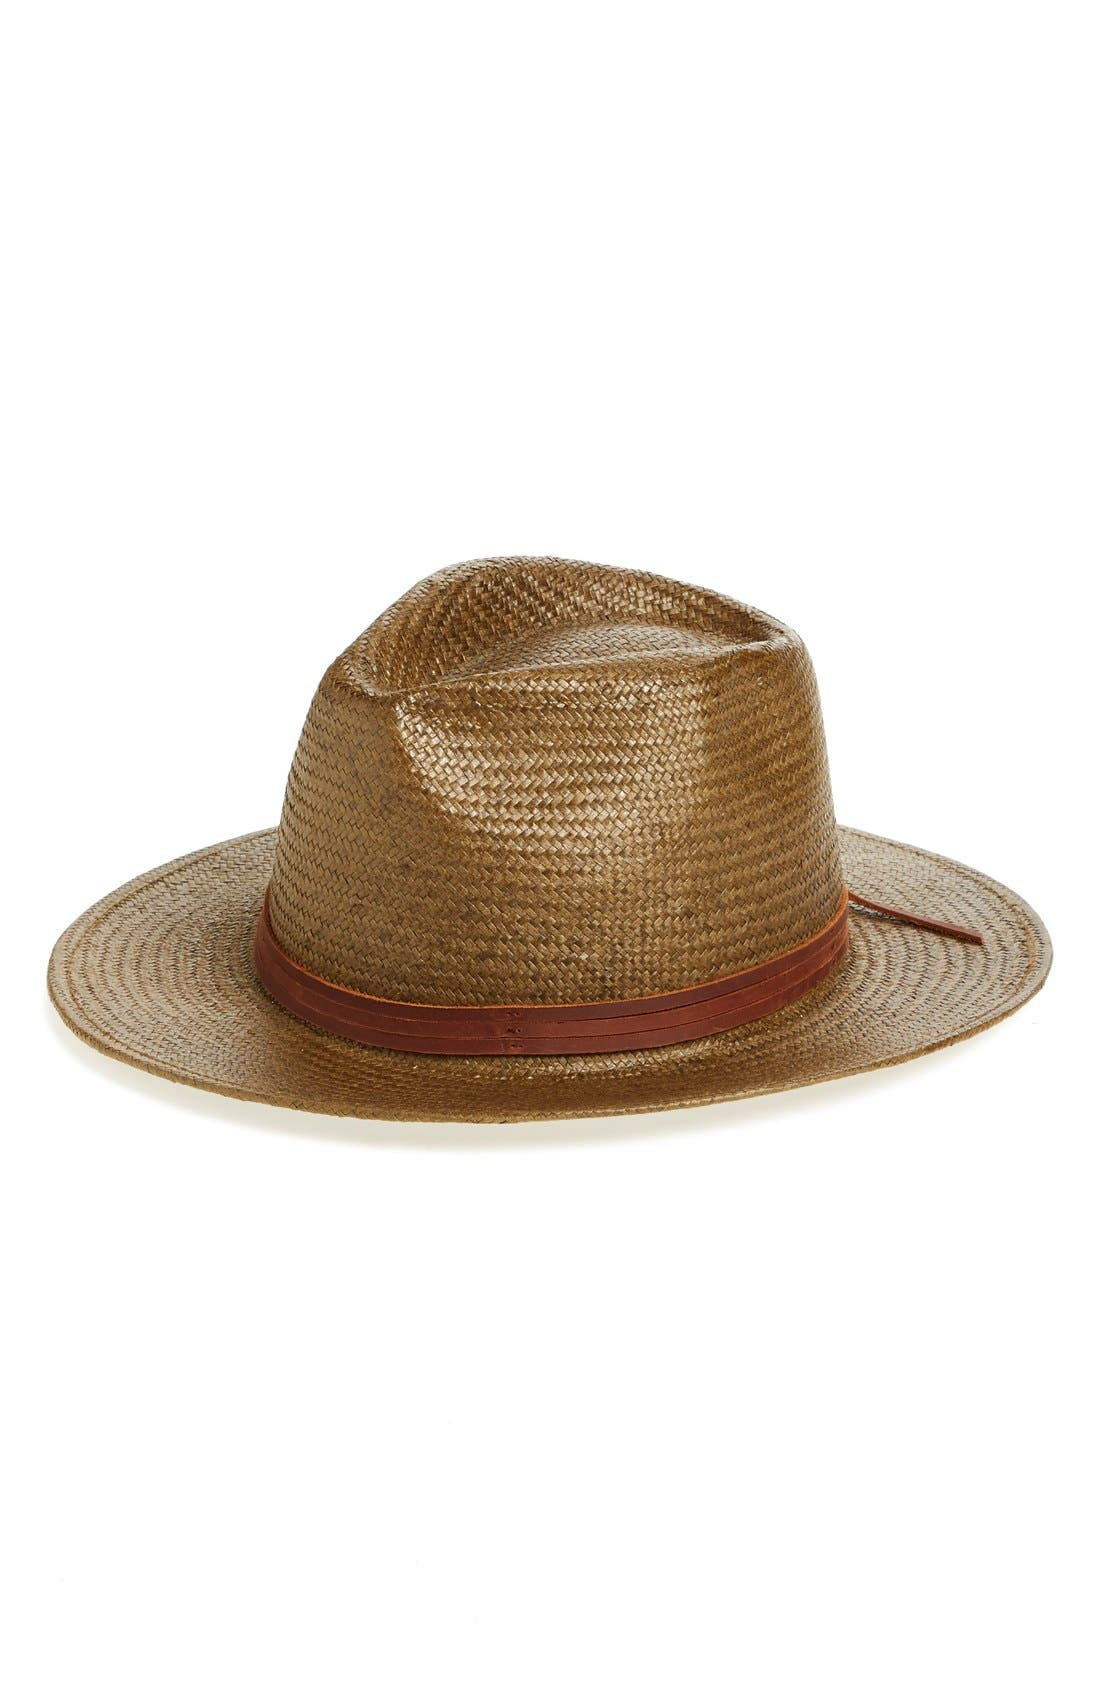 Alternate Image 1 Selected - Brixton 'Pacific' Straw Fedora